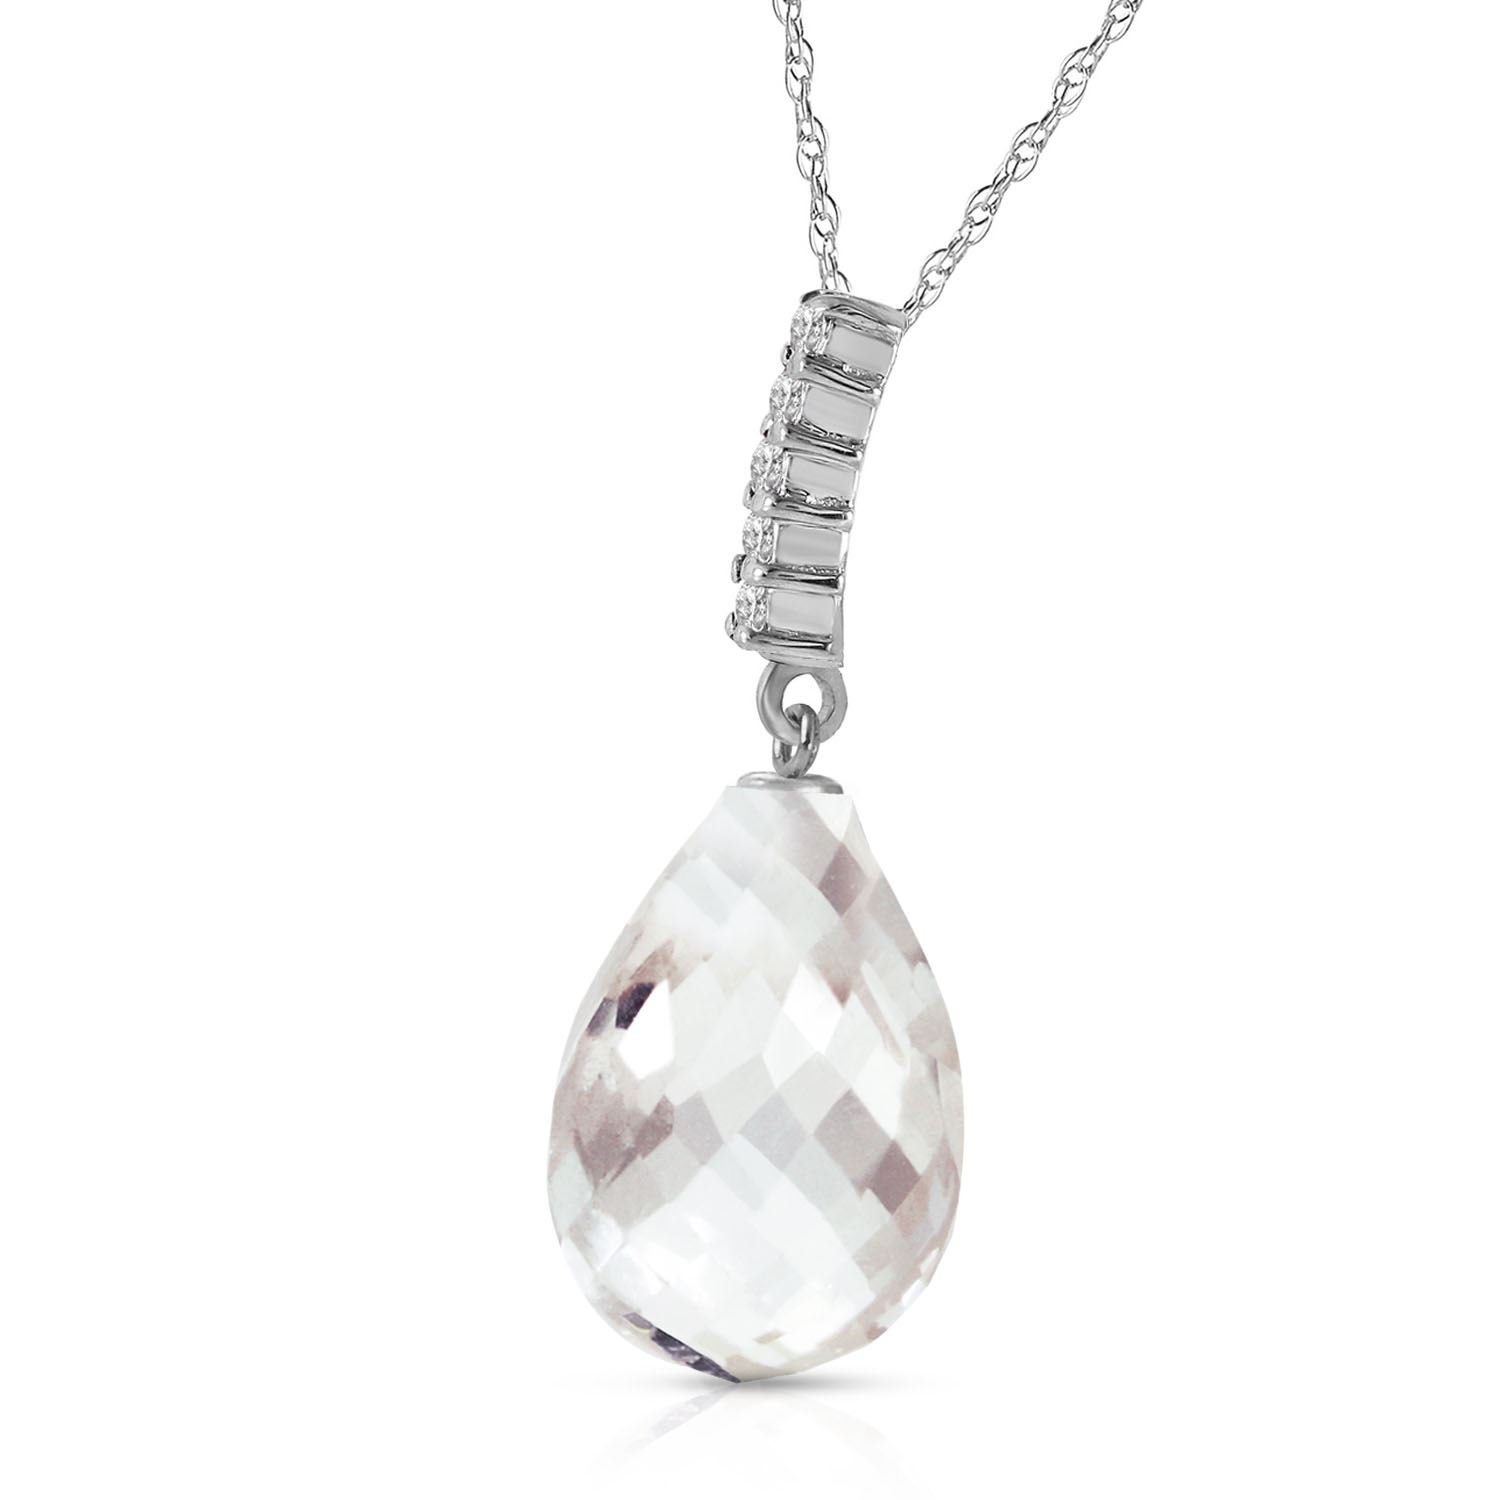 ALARRI 7.18 Carat 14K Solid White Gold Necklace Diamond Briolette Drop White Topaz with 20 Inch Chain Length